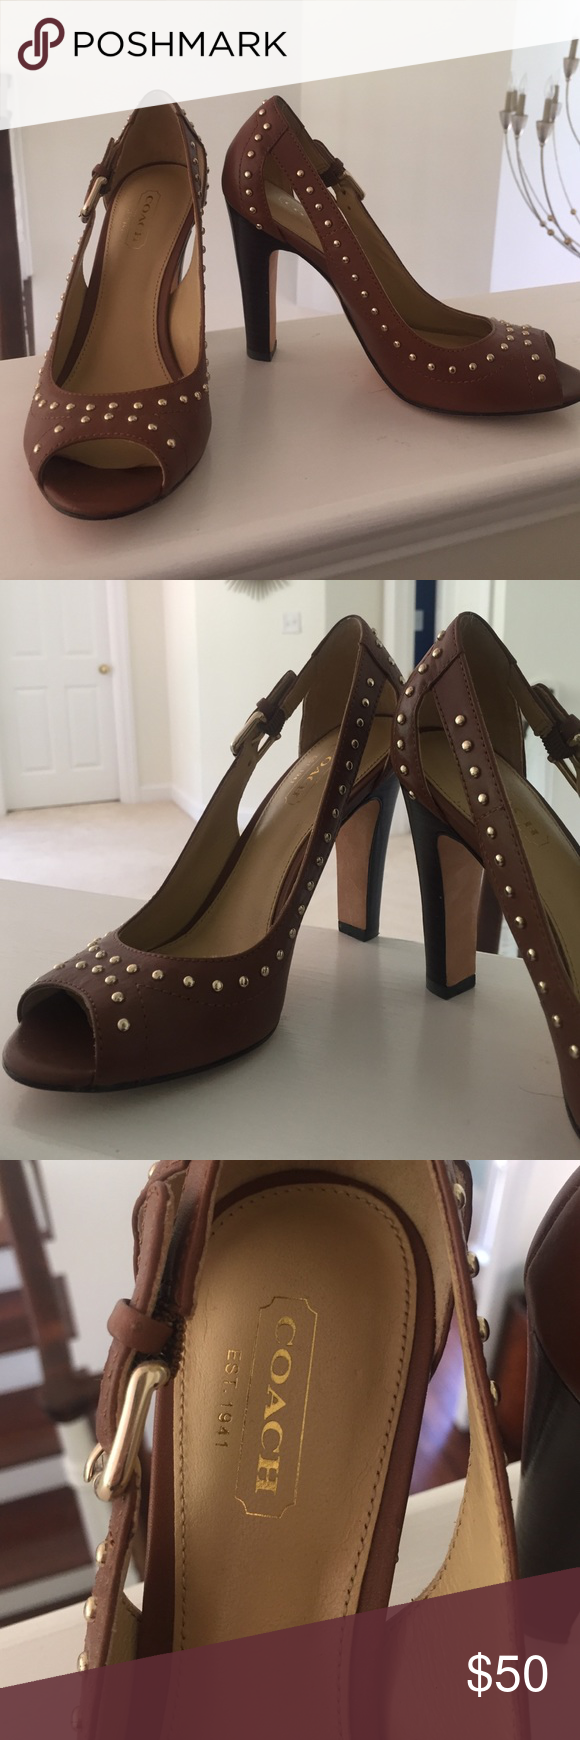 Worn twice coach size 6 studded heels! Only worn twice greasy condition coach brown studded heels! Make an offer! Coach Shoes Heels